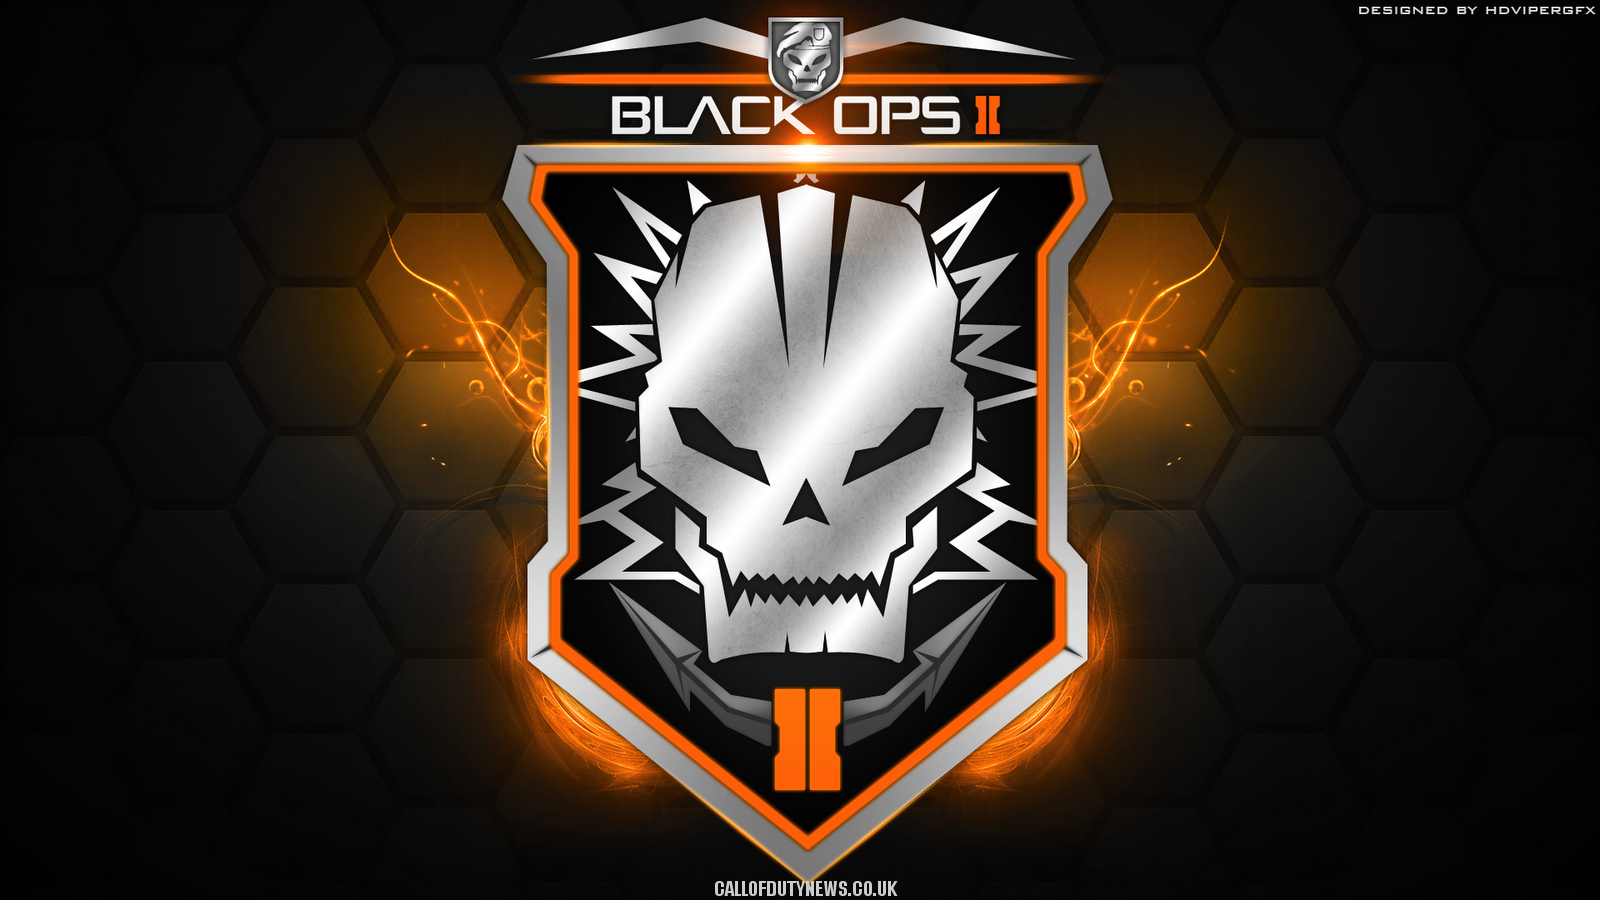 call of duty black ops 2 logo image hd wallpaper